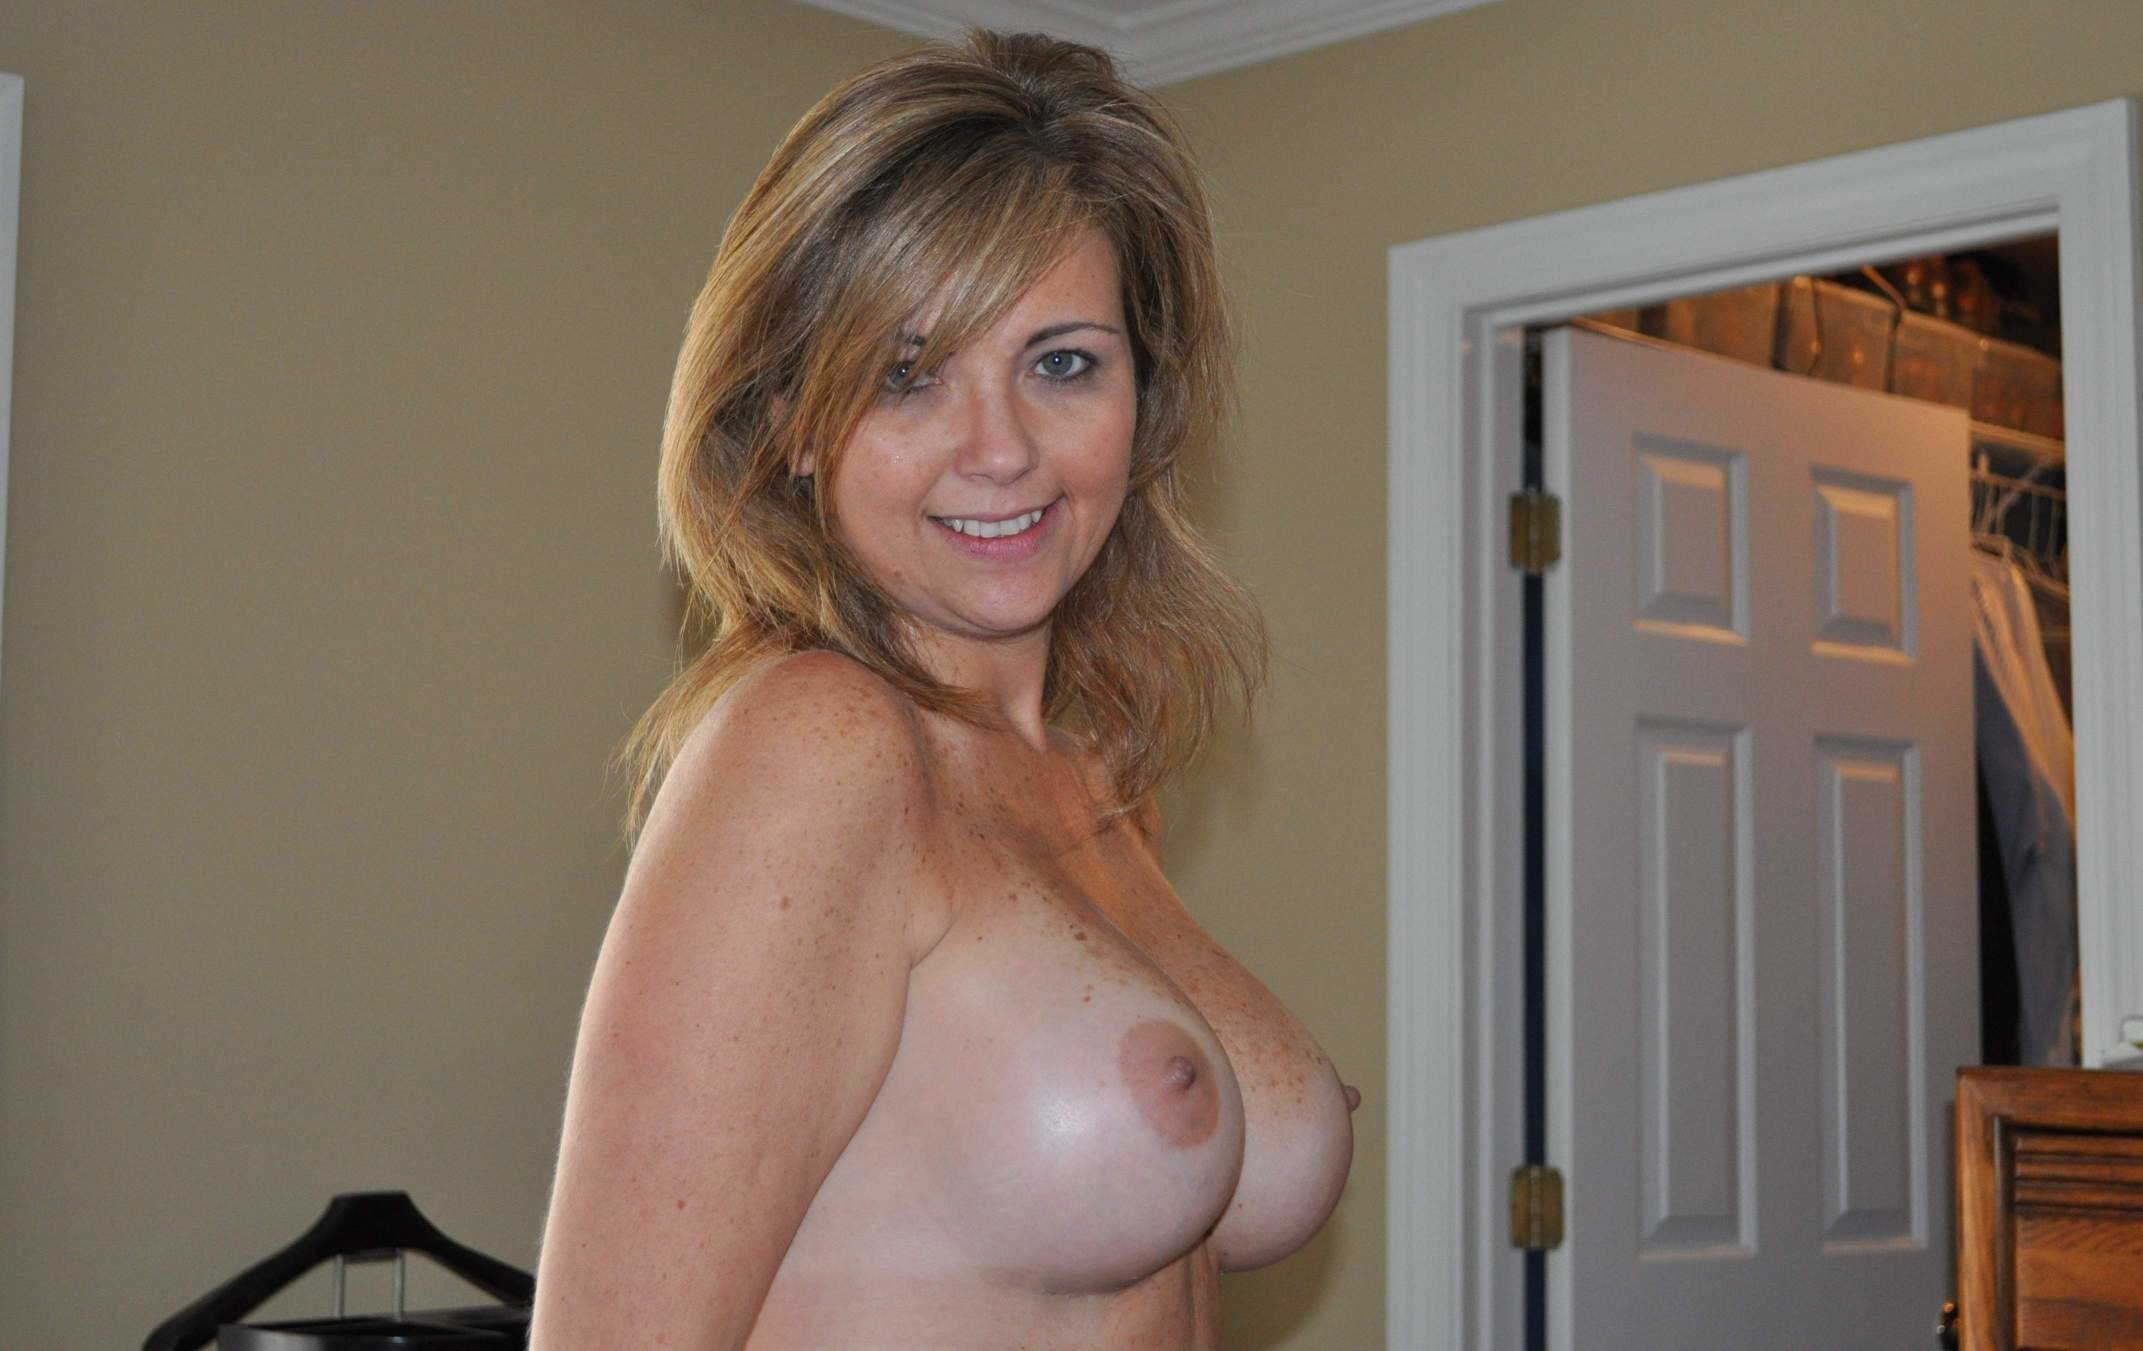 Beautiful milfs and mature moms porn images